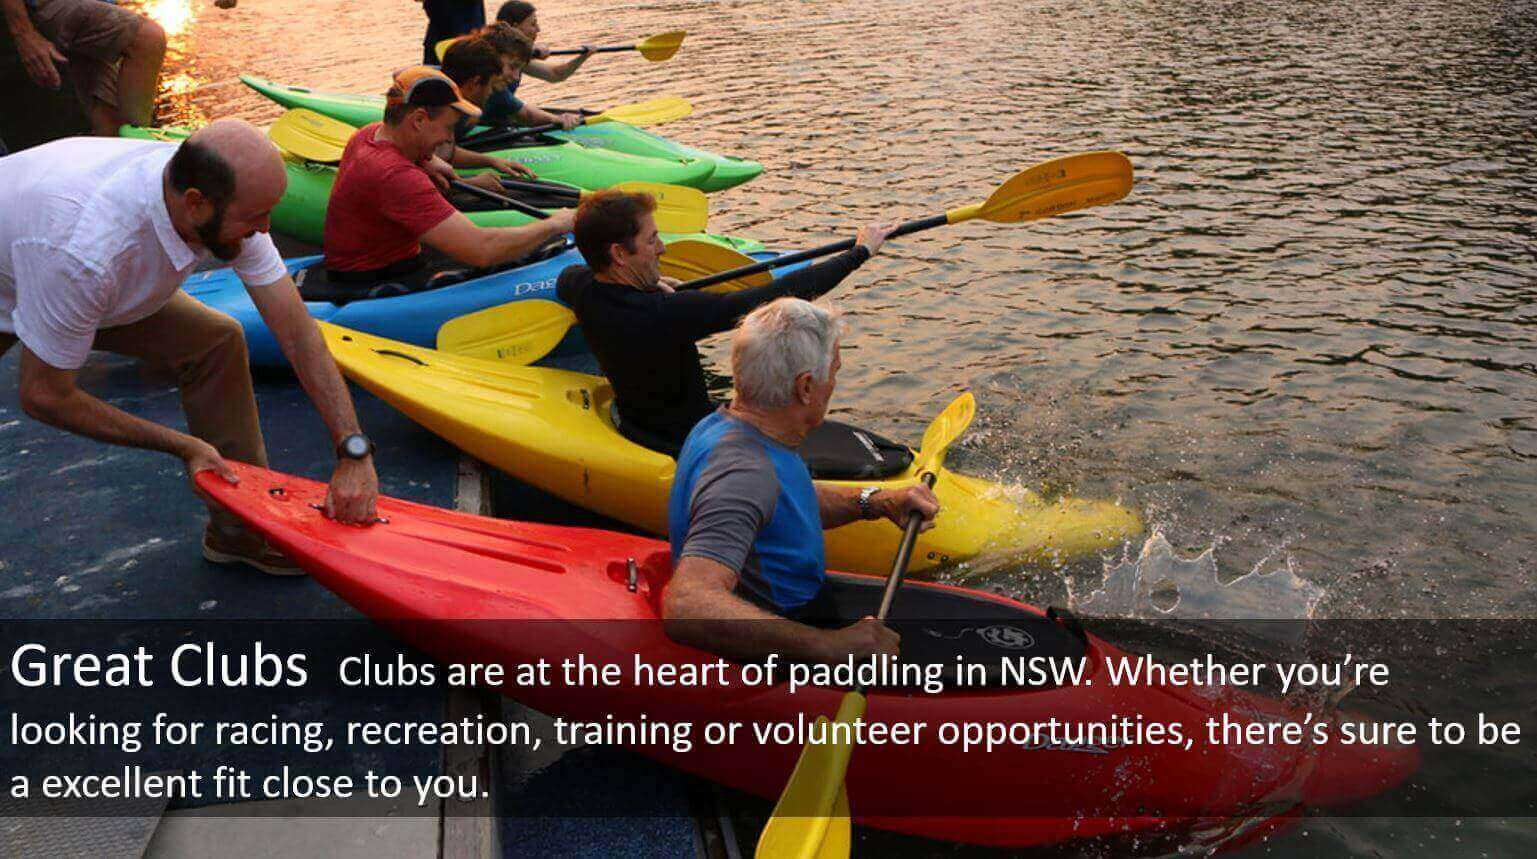 Paddlers dropping off pontoon in playboats, with text on Great Clubs